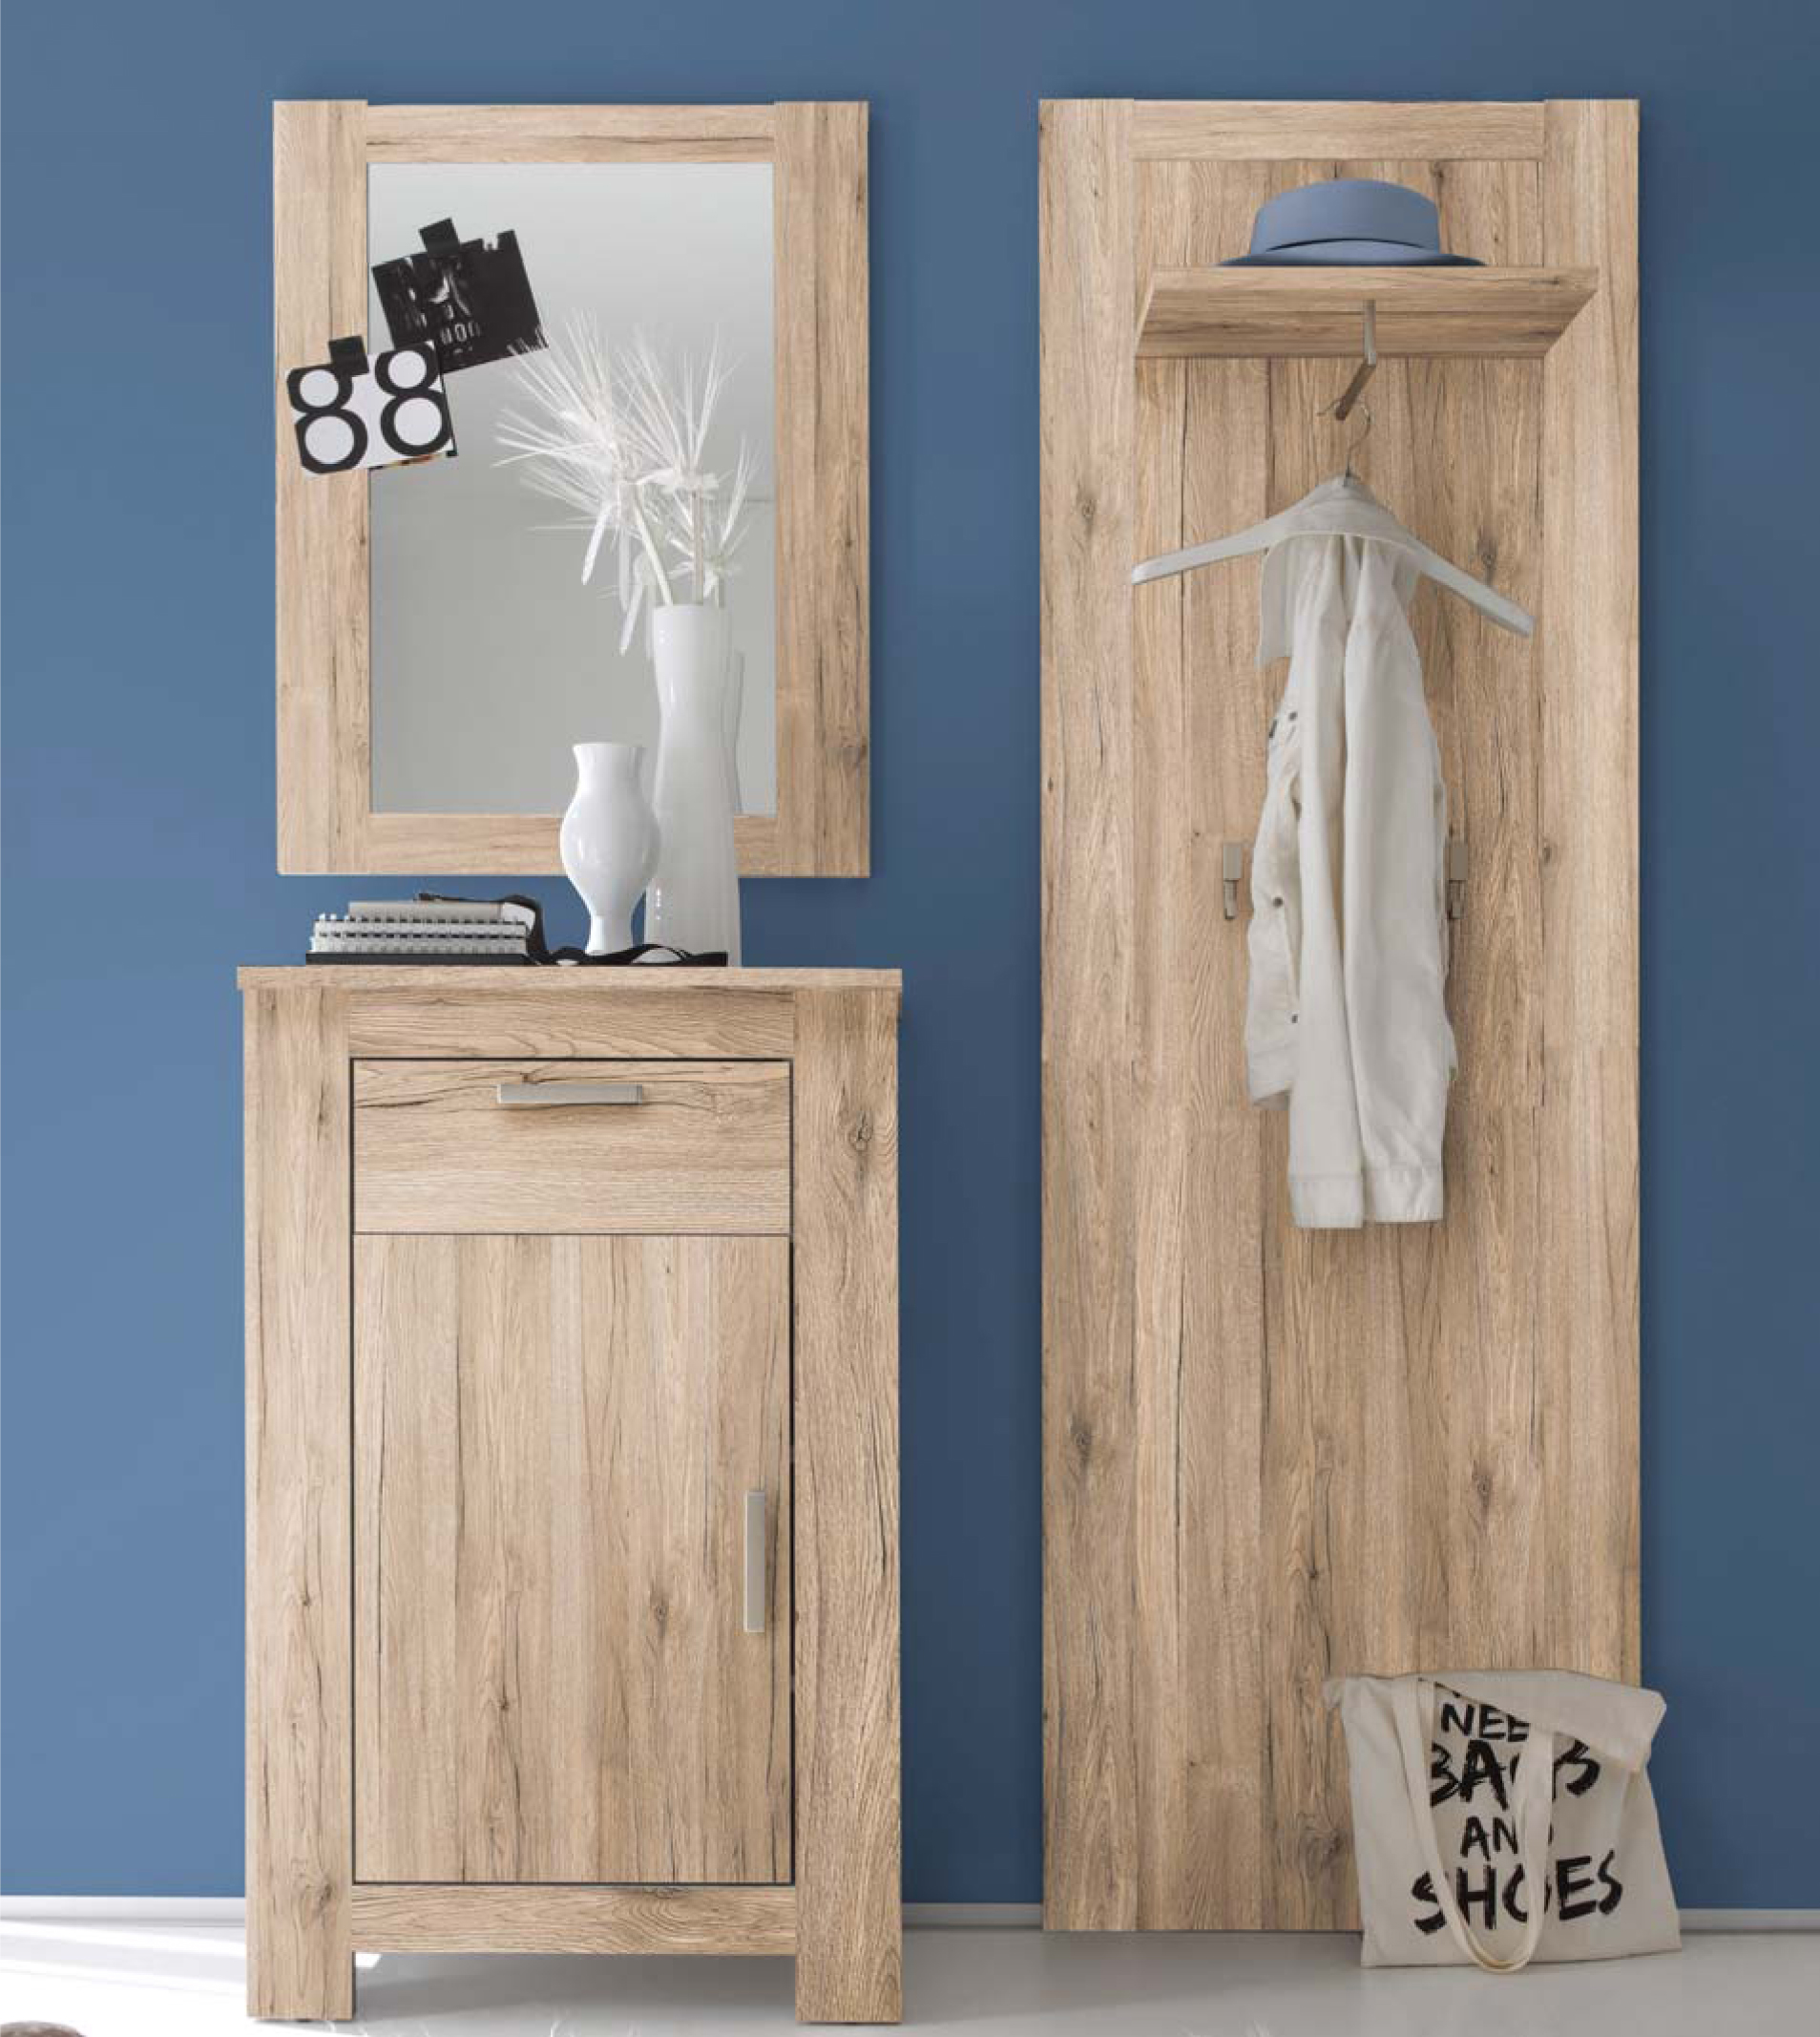 garderobenset flur garderobe dielenset charleston in 2 naturrealistischen farben ebay. Black Bedroom Furniture Sets. Home Design Ideas